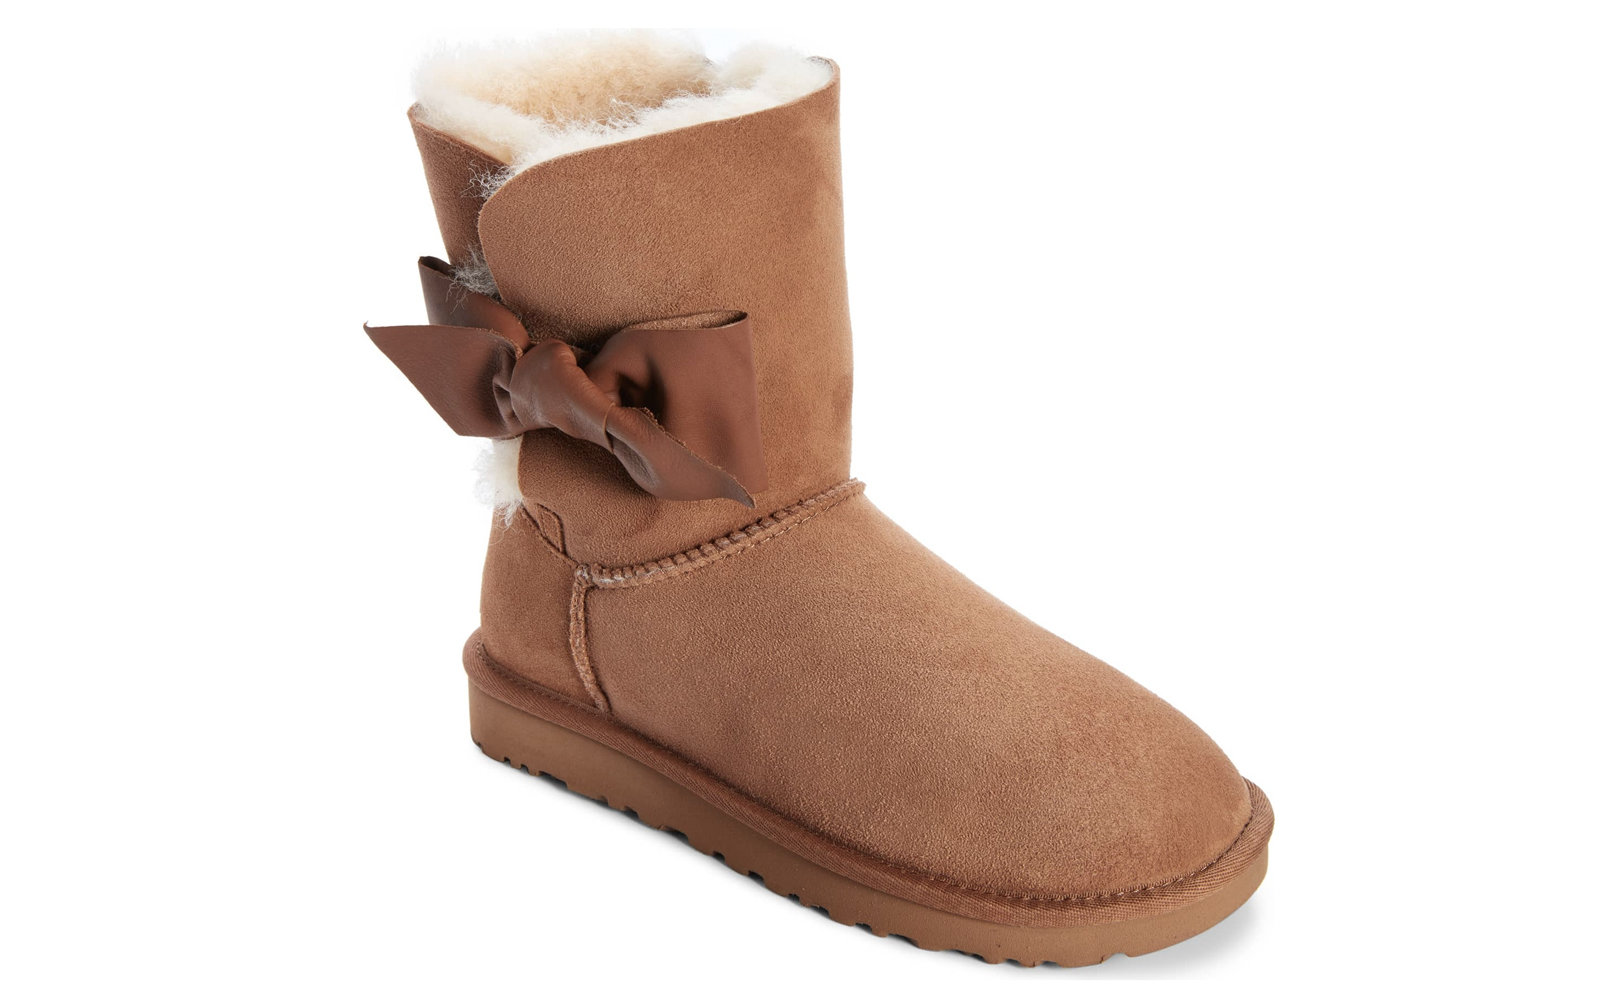 e64dec20e The Best Uggs on Sale Right Now